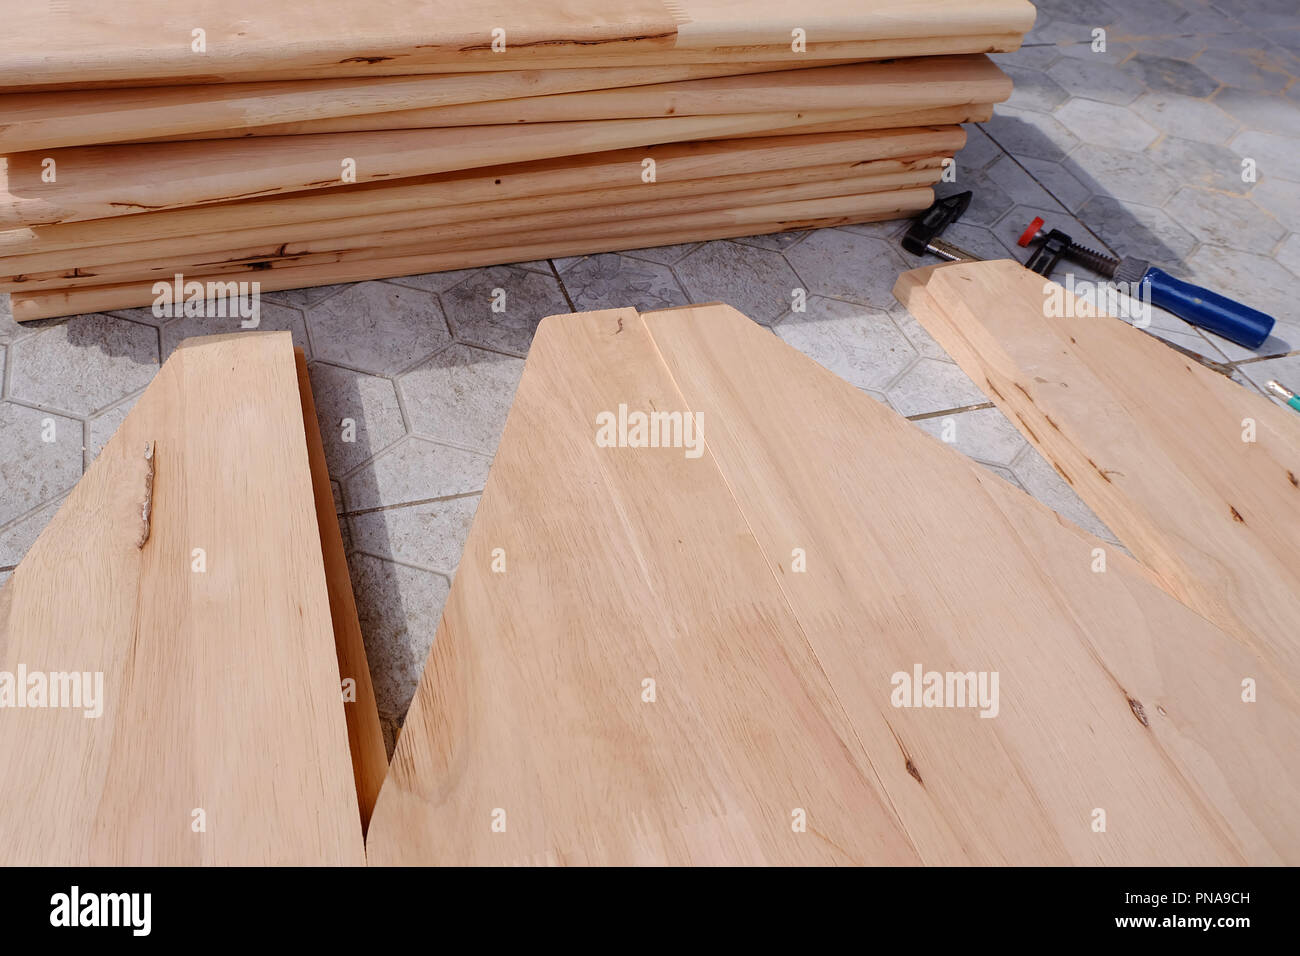 Woodworking equipment, work on wood plank in workshop - Stock Image